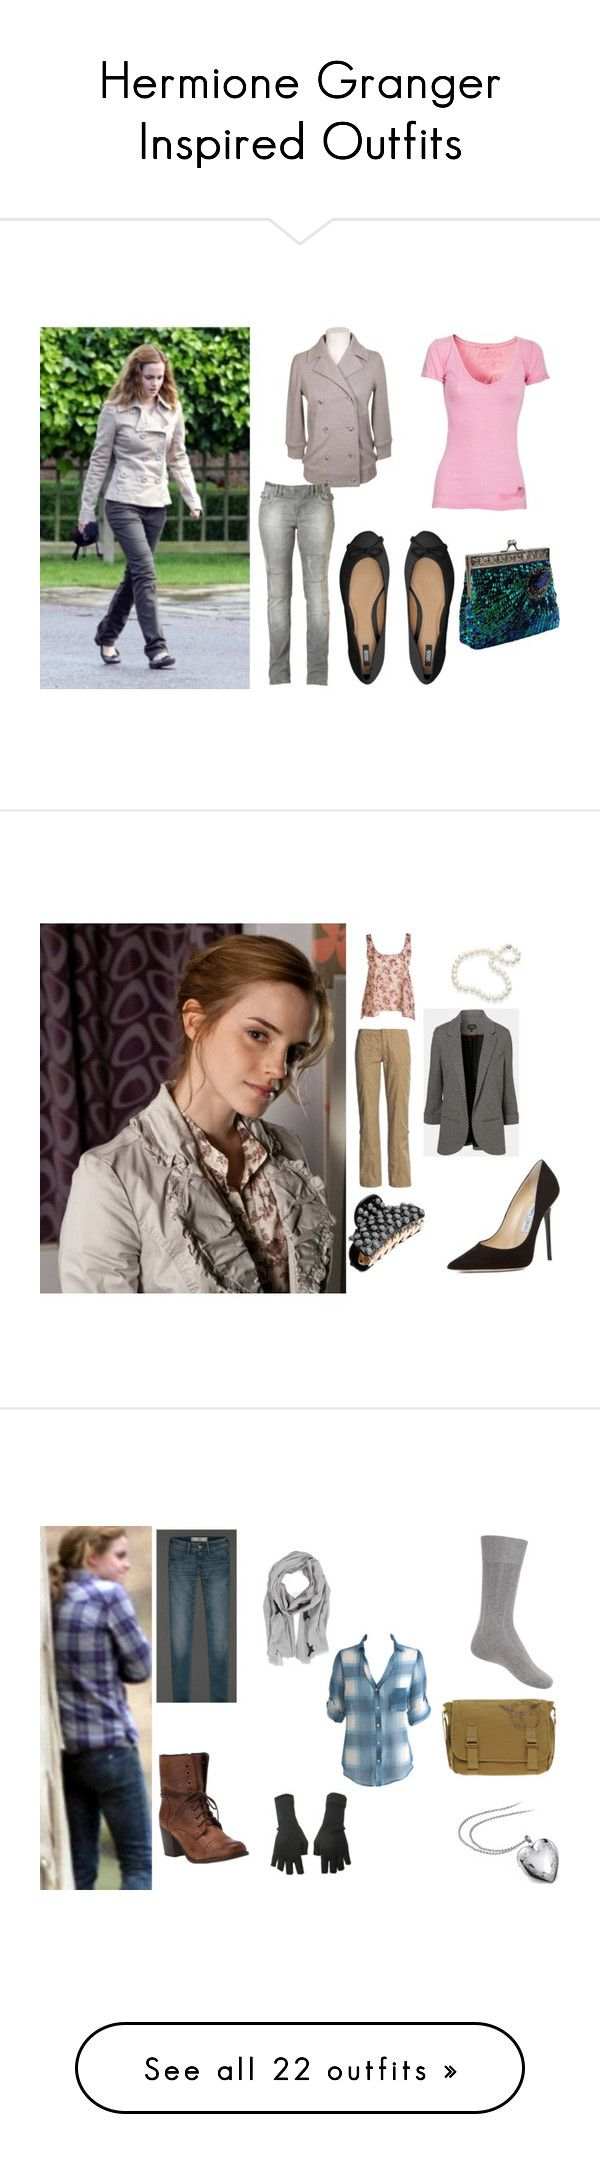 """""""Hermione Granger Inspired Outfits"""" by yellowheads ❤ liked on Polyvore featuring Marc by Marc Jacobs, True Religion, Joe Browns, ASOS, hermione granger, harry potter, emma watson, deathly hallows, Emma Watson and Topshop"""